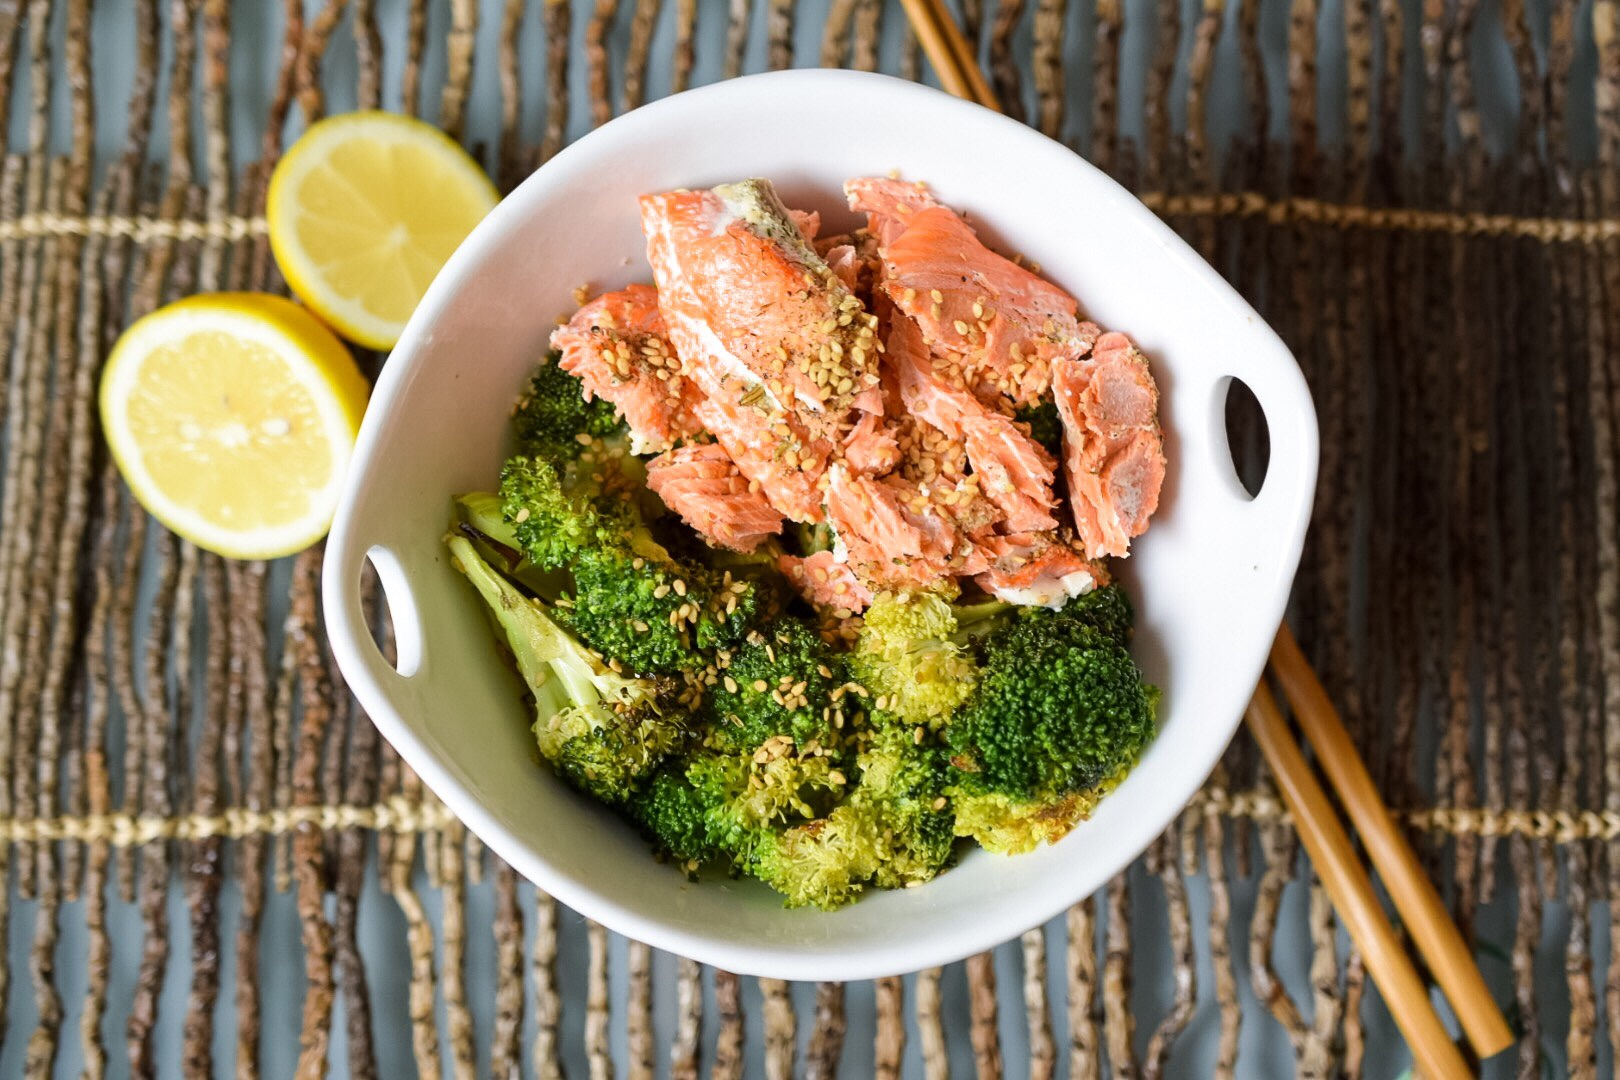 Brassica Tea Poached Salmon - Finished Dish